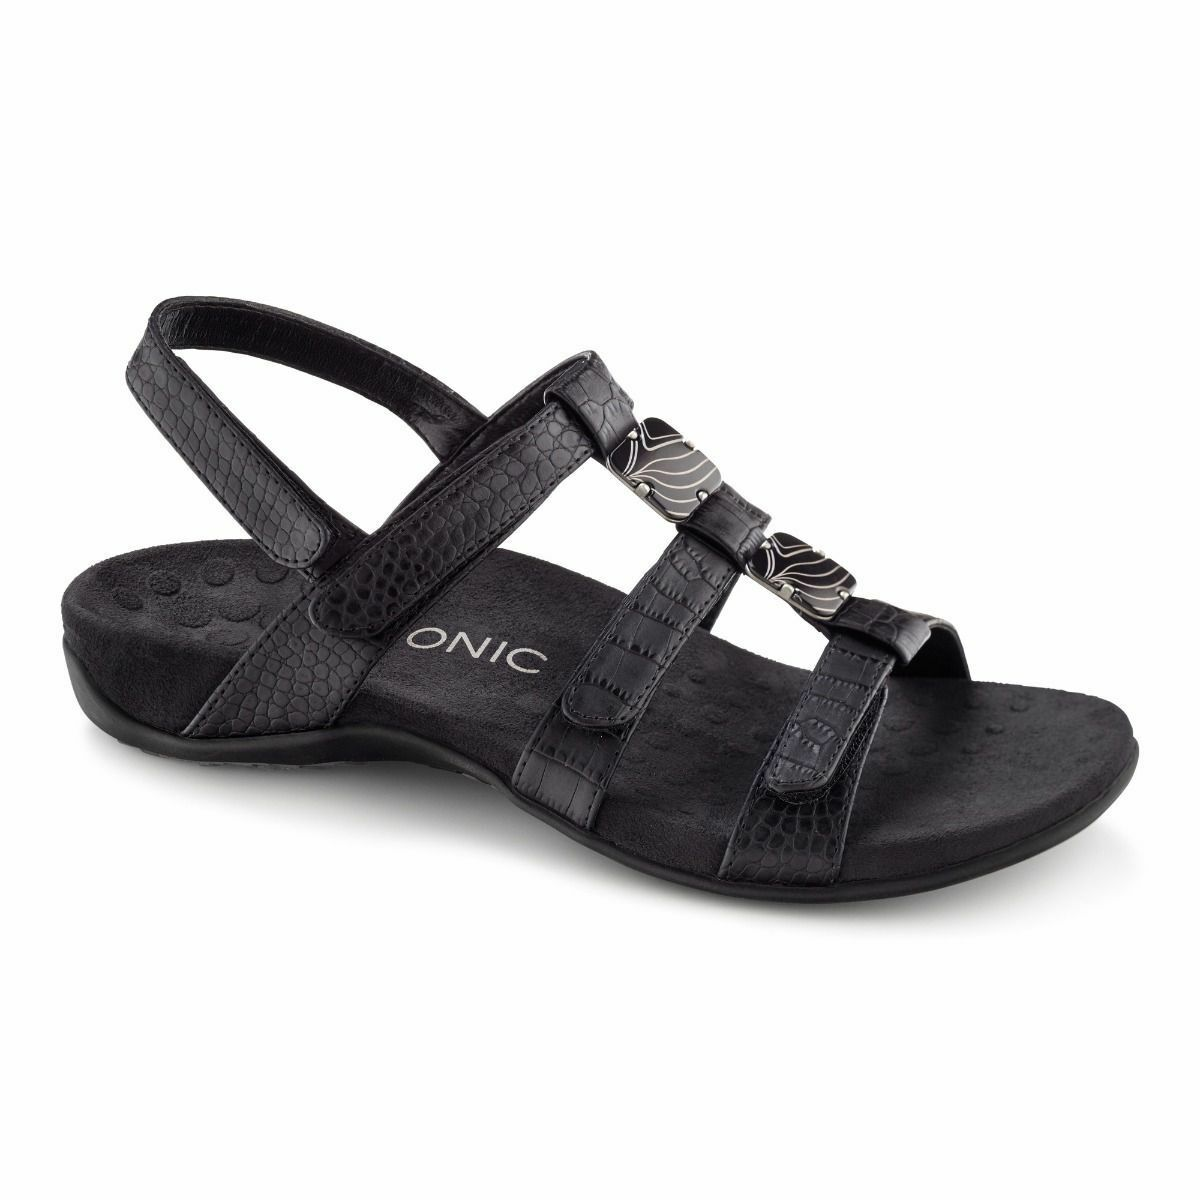 Vionic Orthotic Adjustable Amber Women's Sandal - Black Croc